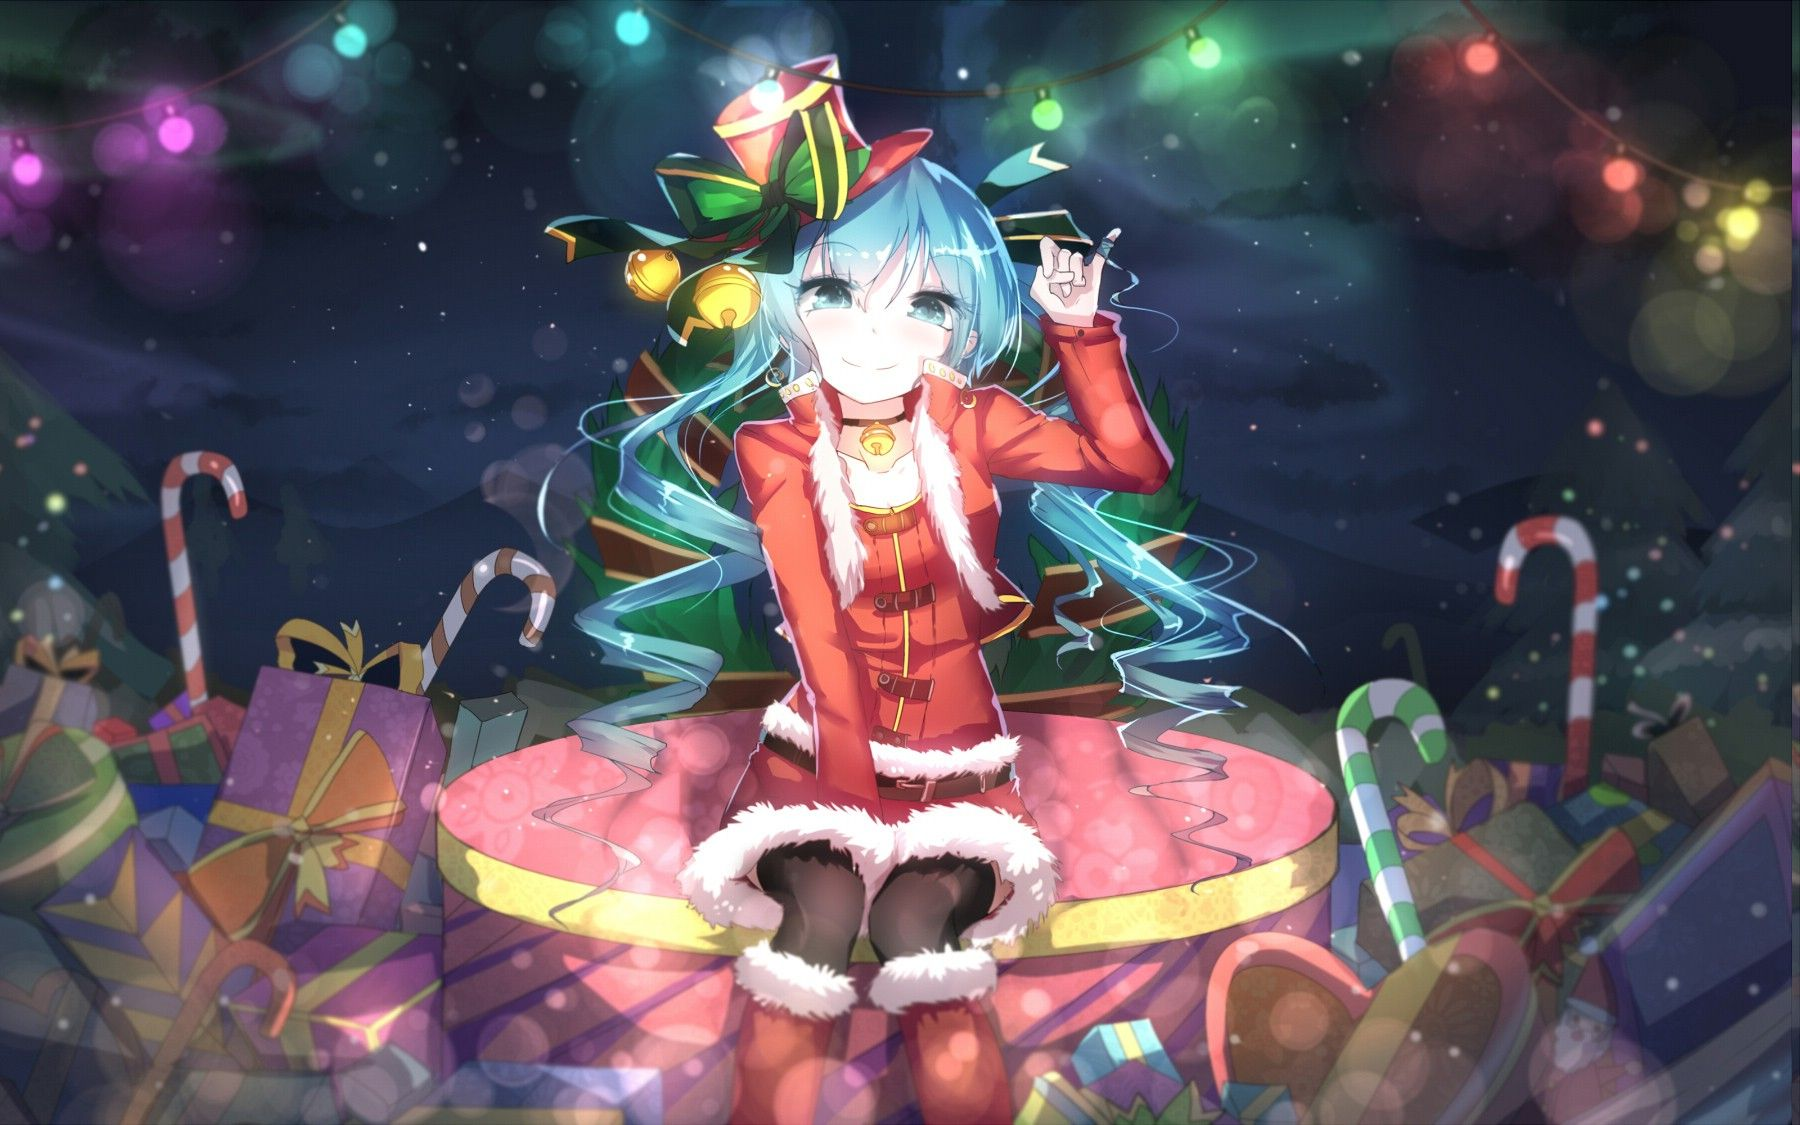 Christmas Hatsune Miku.Miku Christmas Anime Wallpapers Top Free Miku Christmas